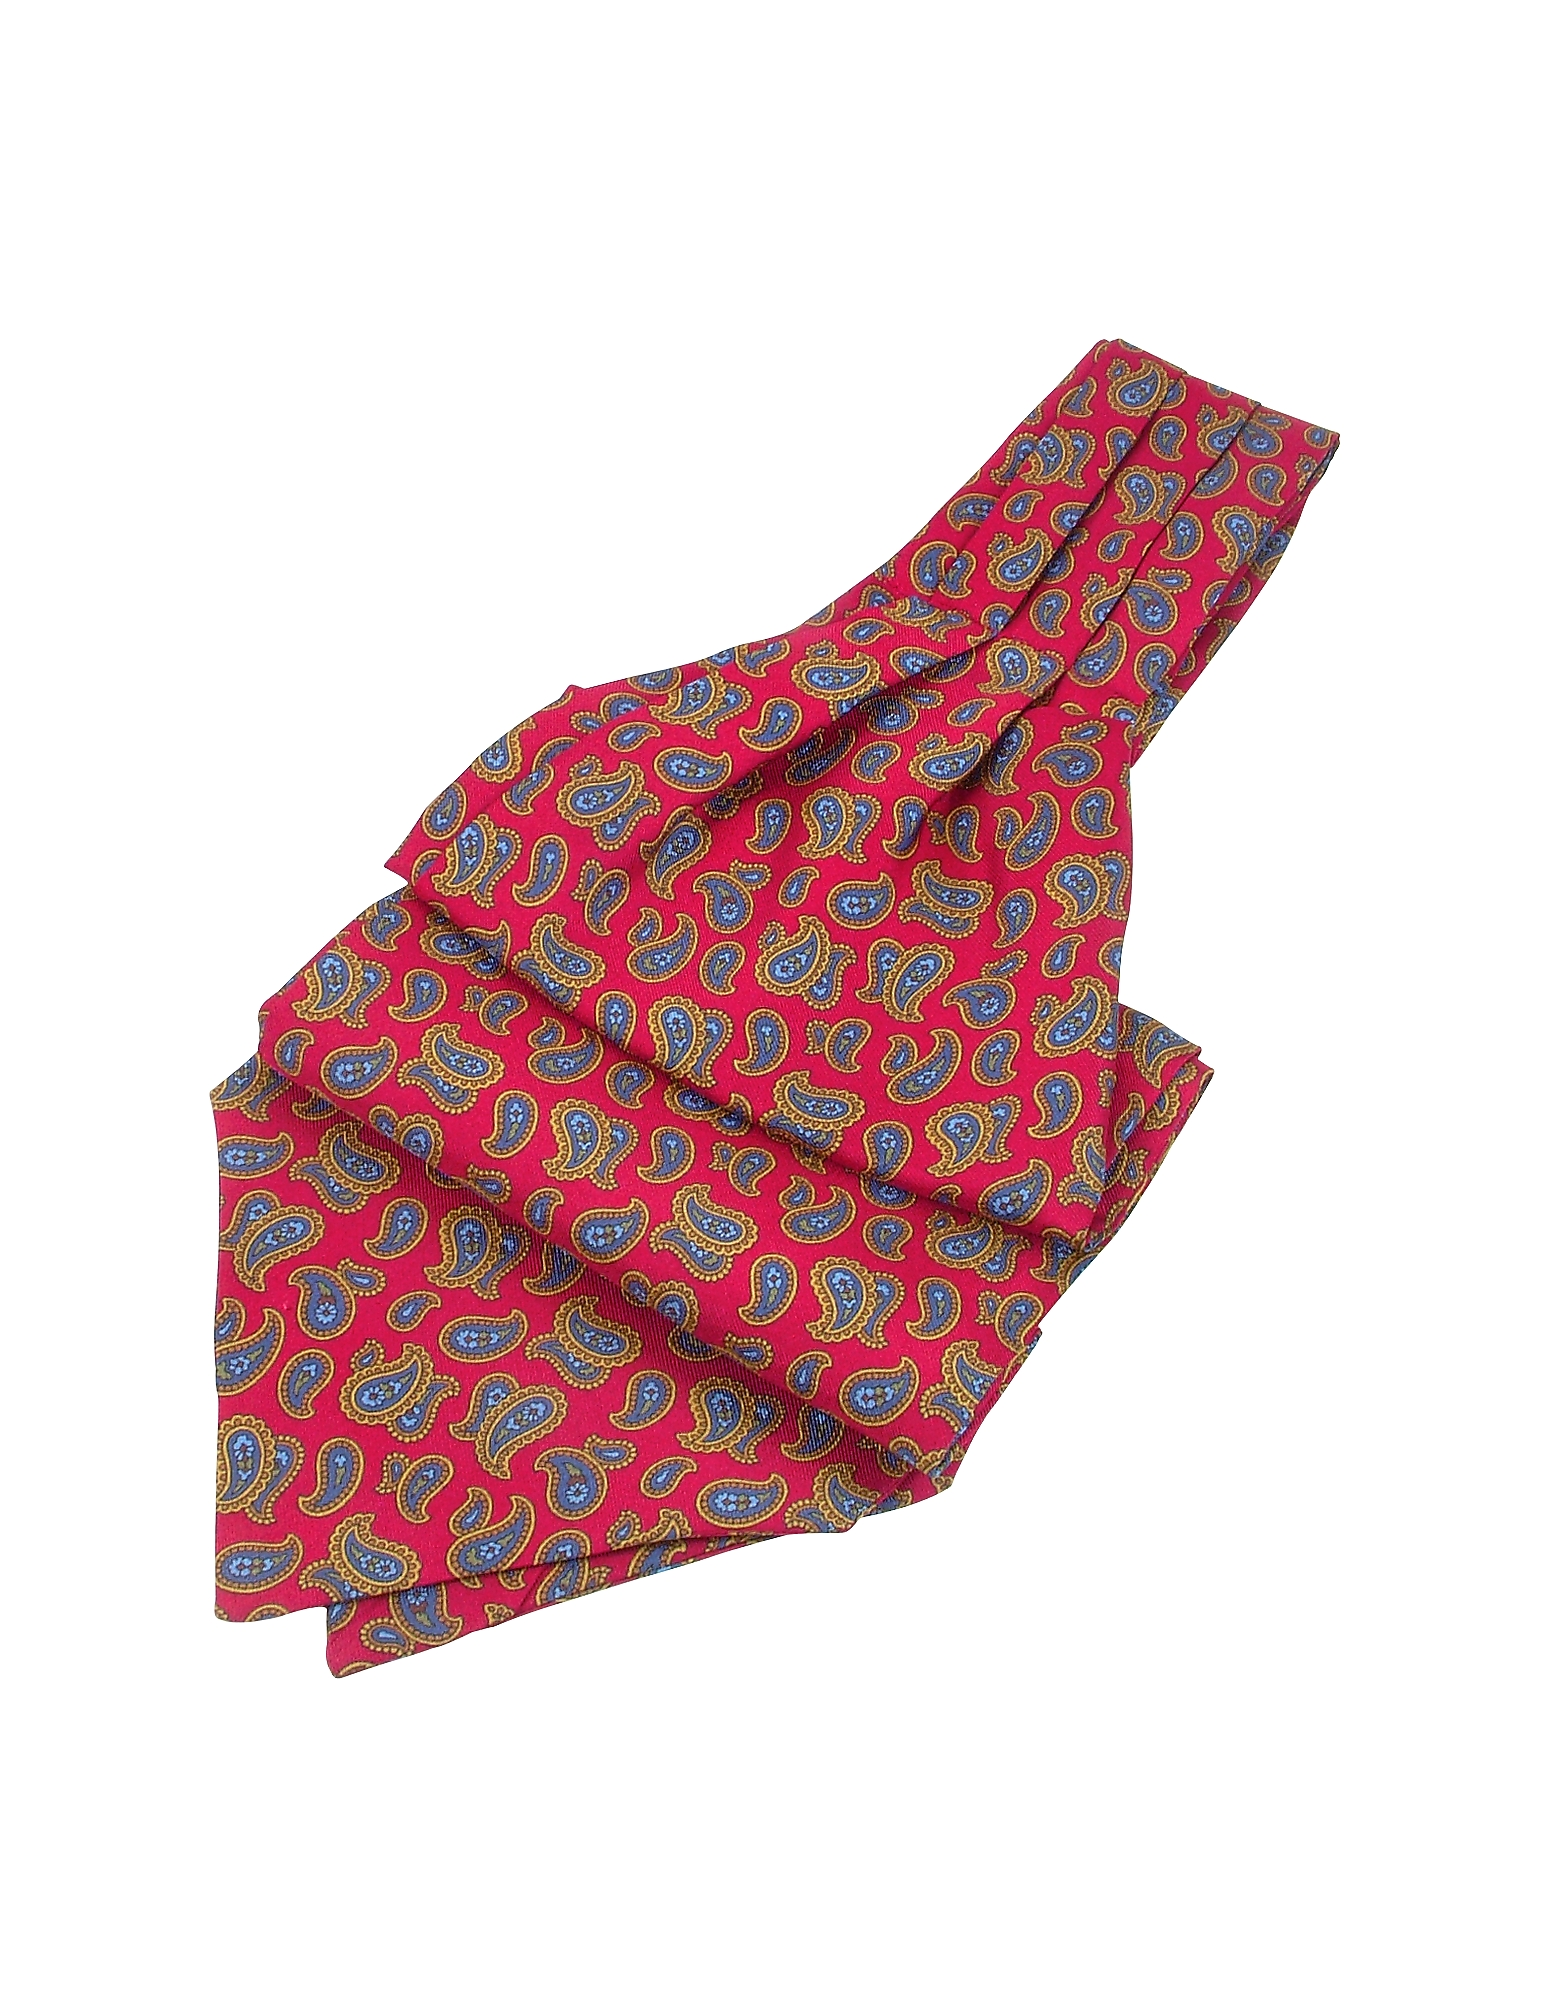 Image of Forzieri Designer Ascot ties, Large Paisley Print Twill Silk Ascot